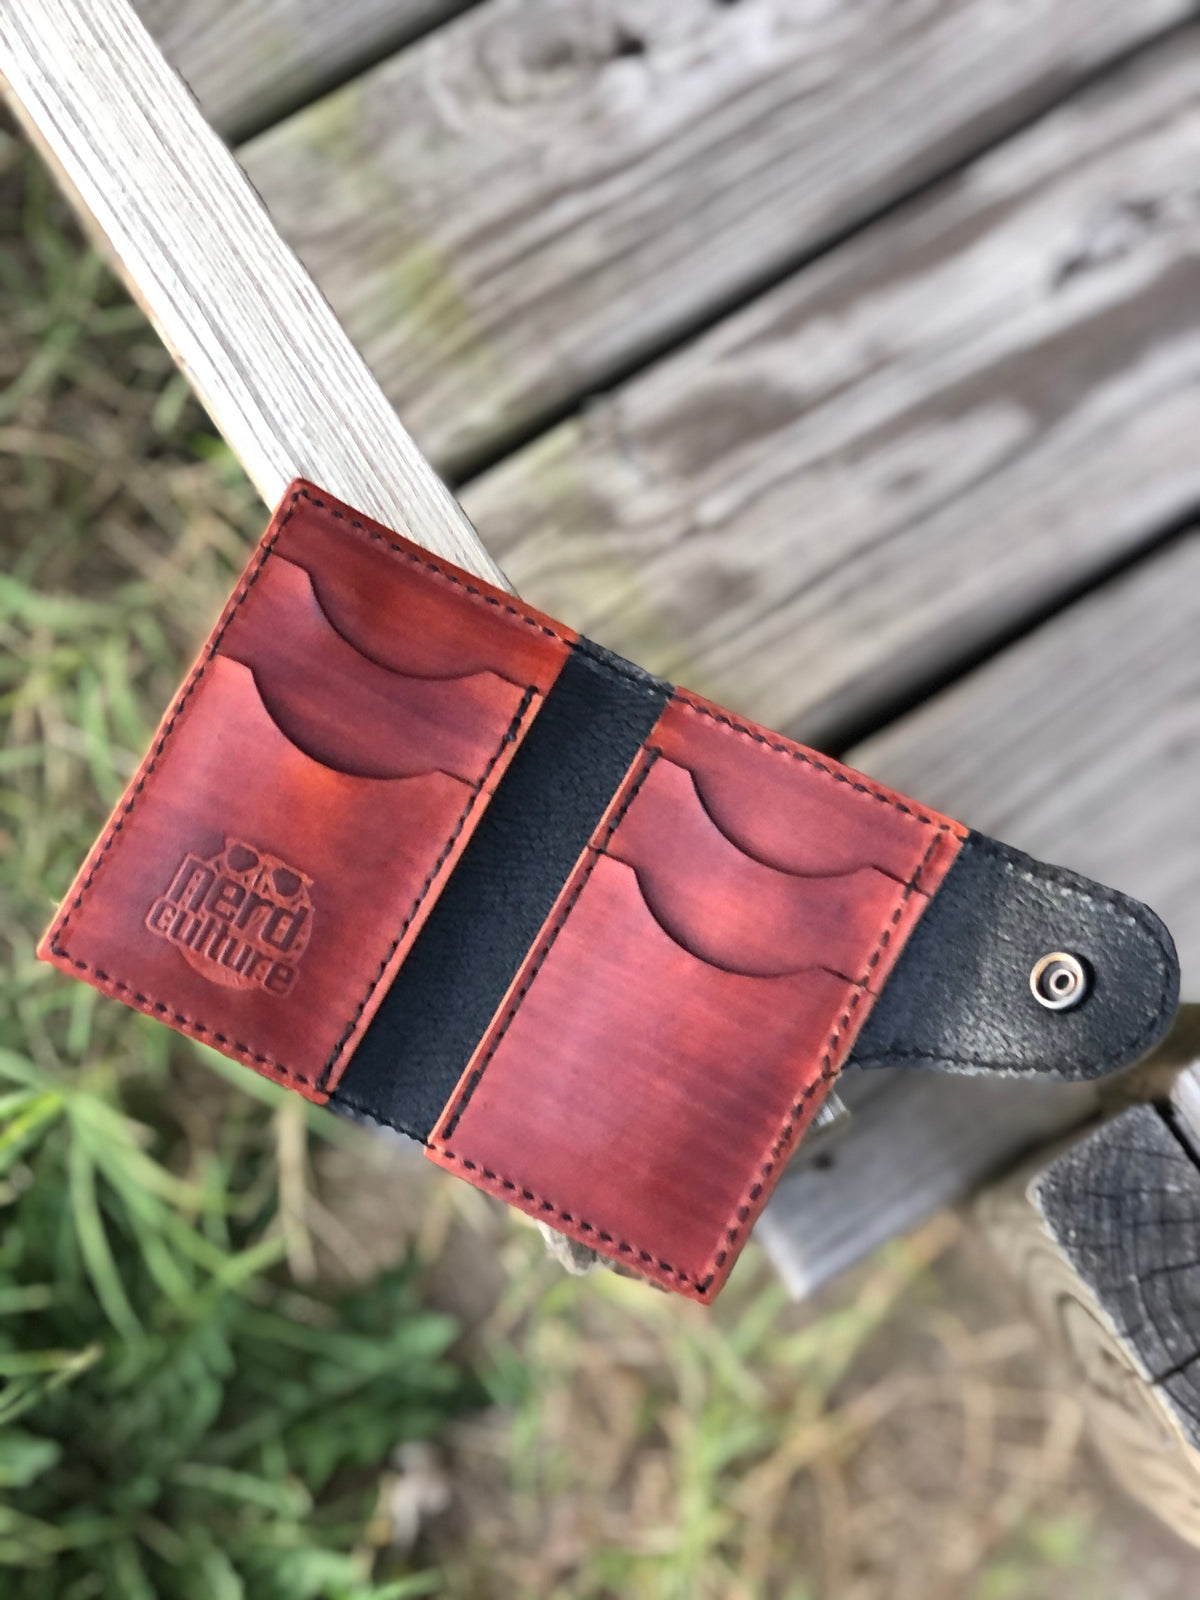 ¡Borracho! Hand Tooled Leather Snap Card Wallet - Nerd Culture Leather